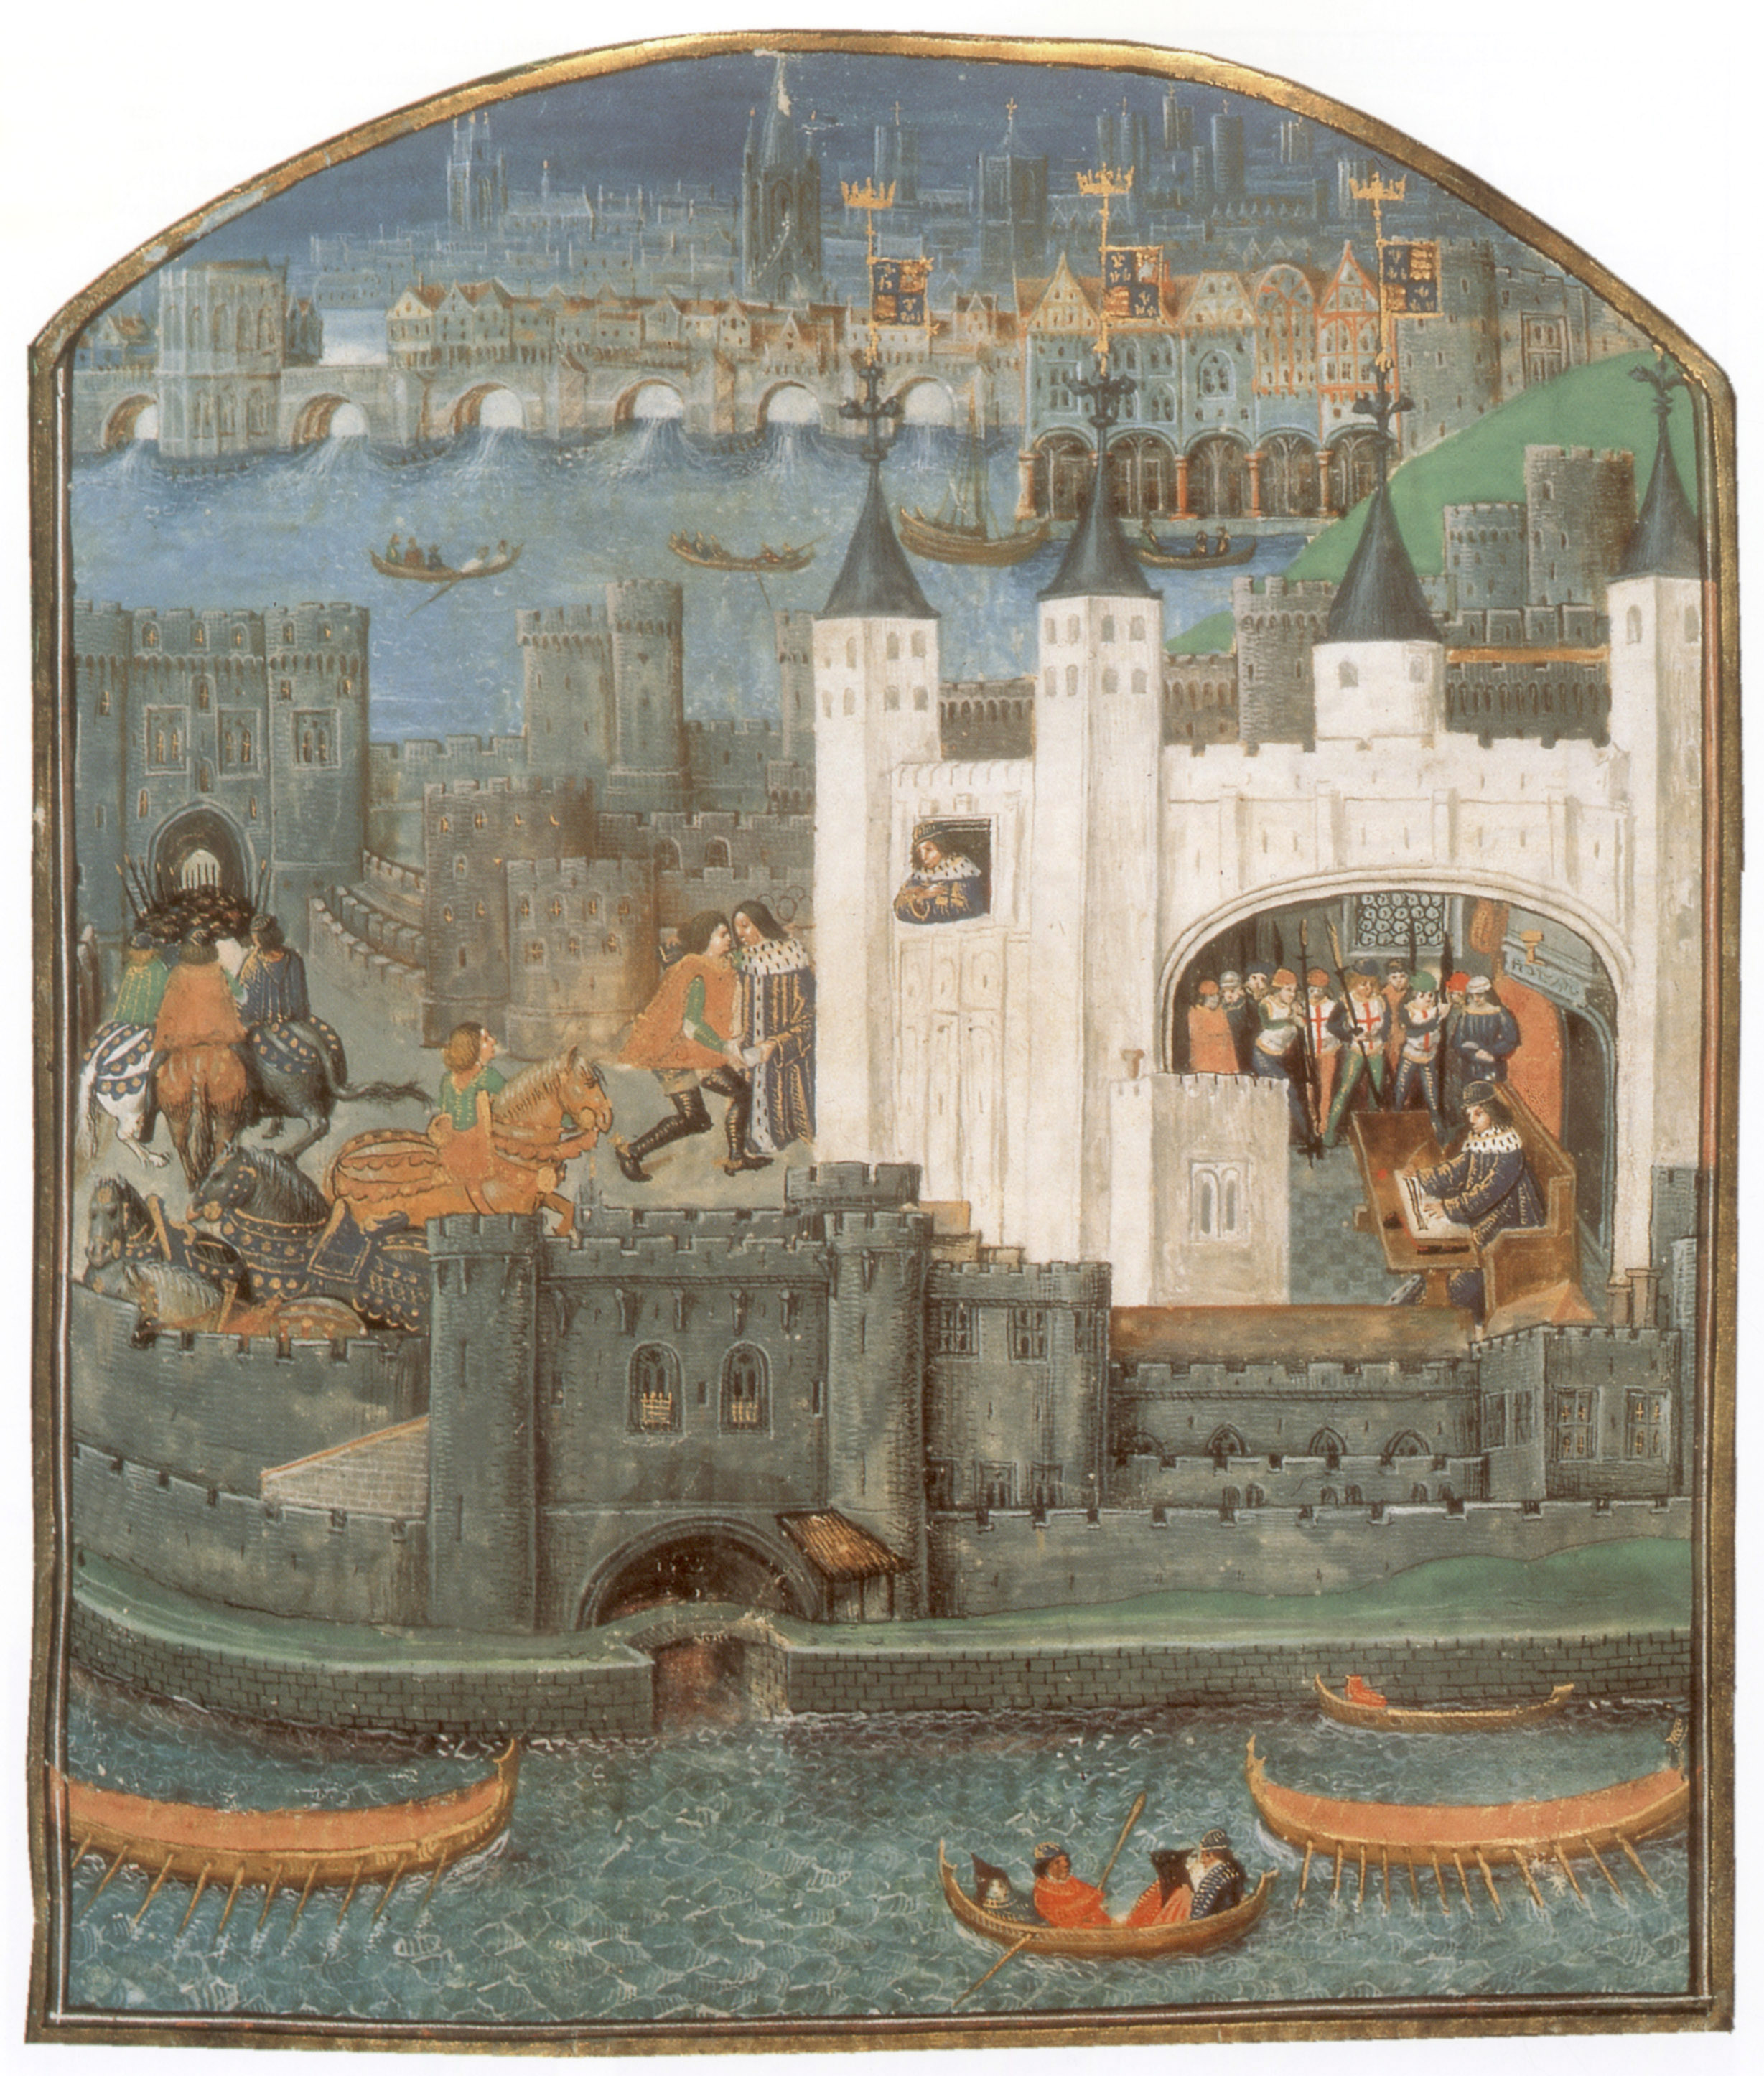 """View of the tower where Charles was captured, illustrated in """"Poems of Charles, Duke d'Orleans"""" c. 1500.  (Credit: Apic/Getty Images)"""